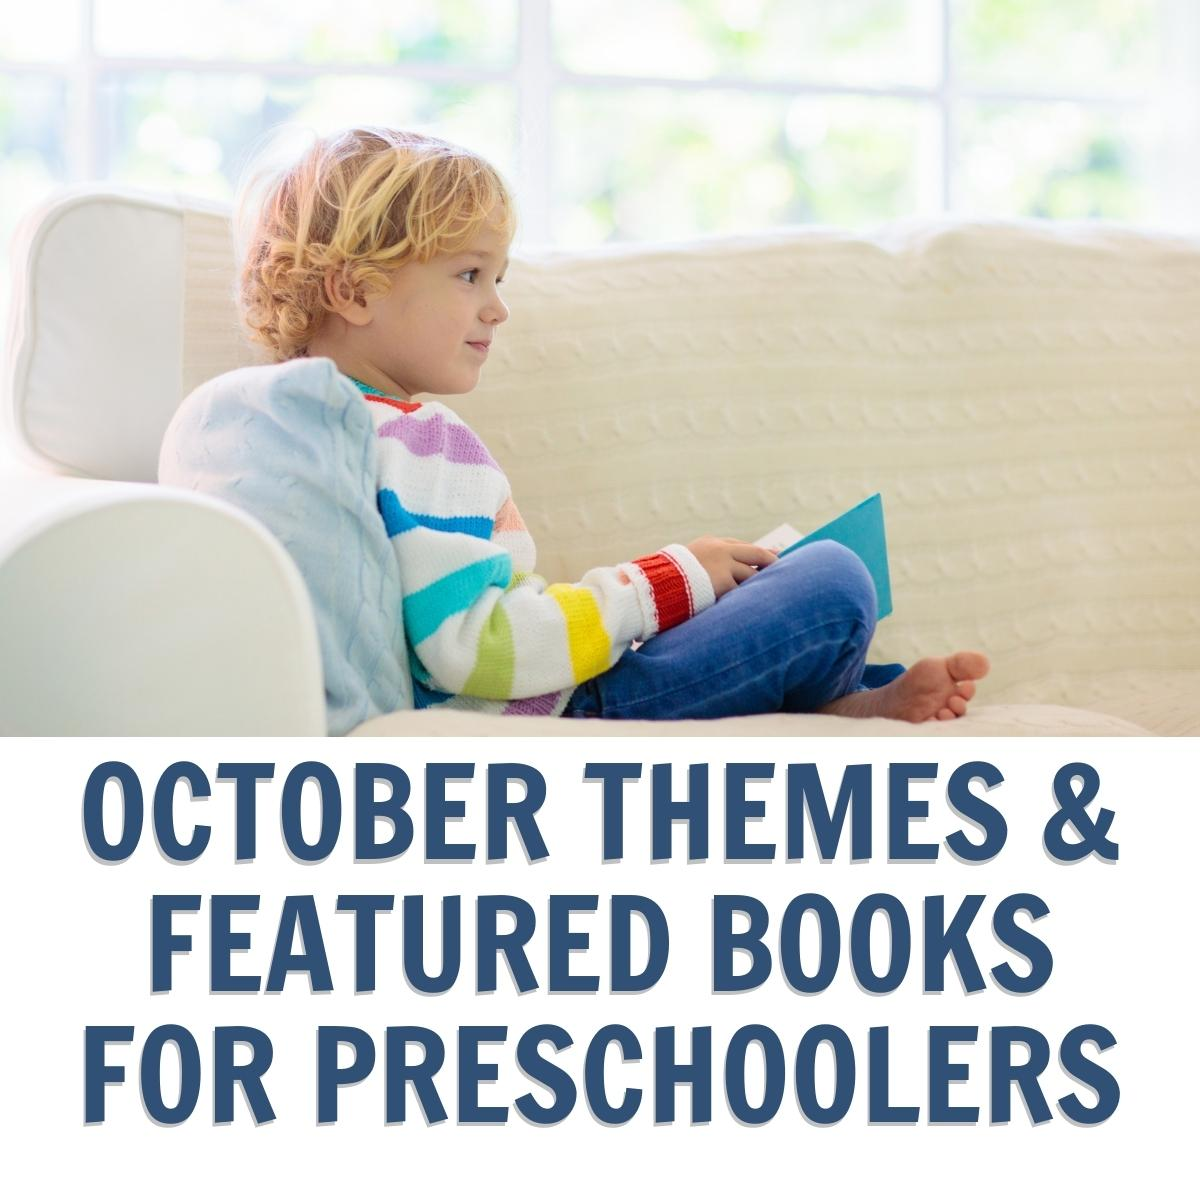 October Books and Themes for Weekly Fun with Preschoolers from the Virtual Book Club for Kids